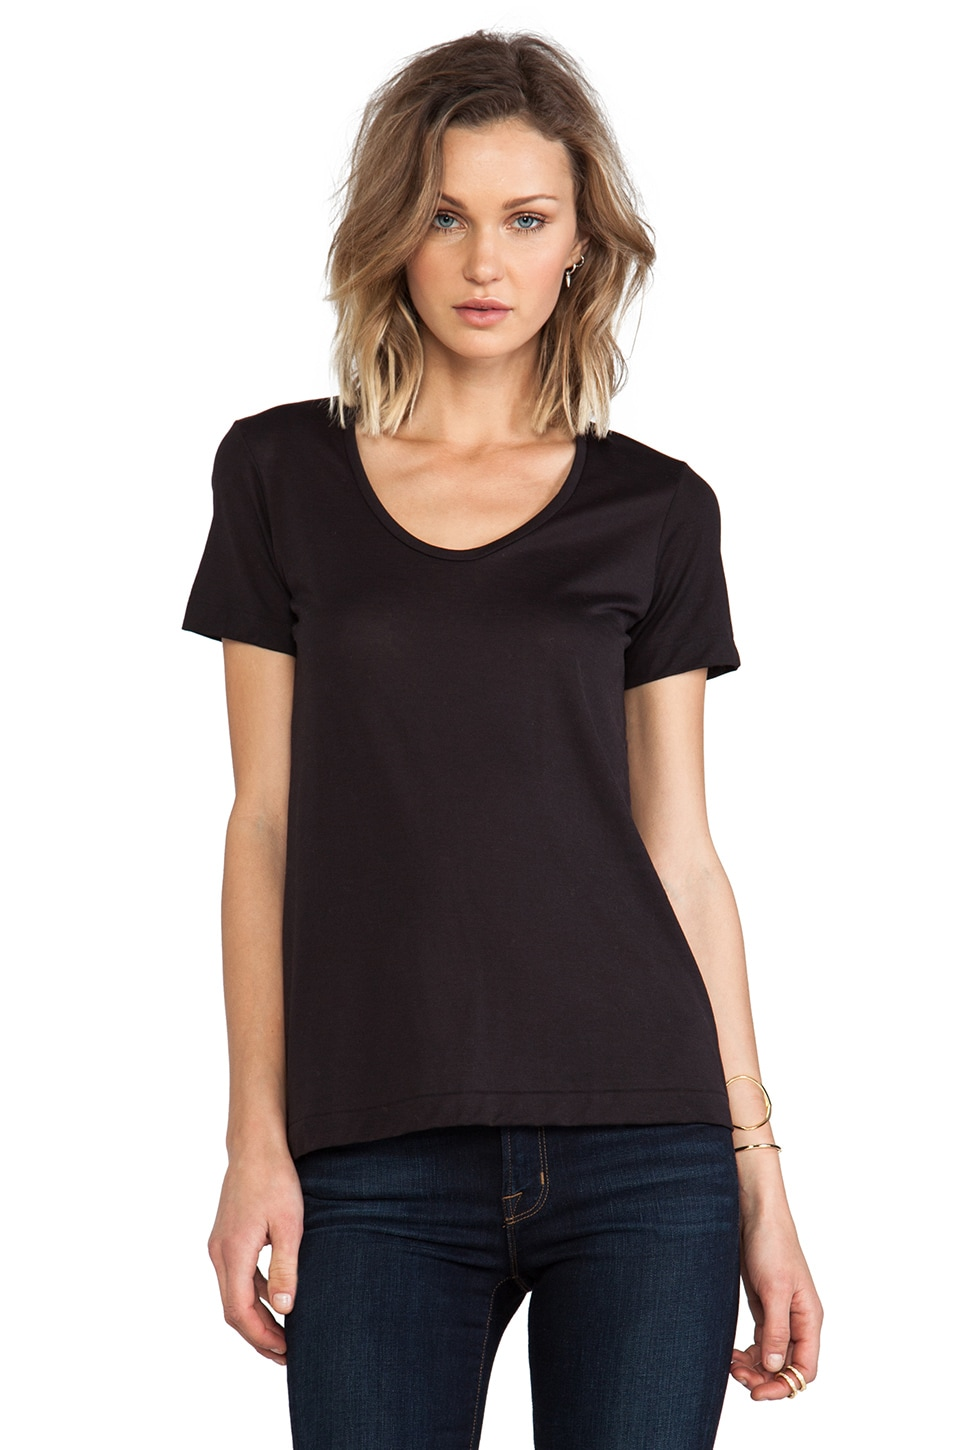 Theory Chamblee Tee in Black